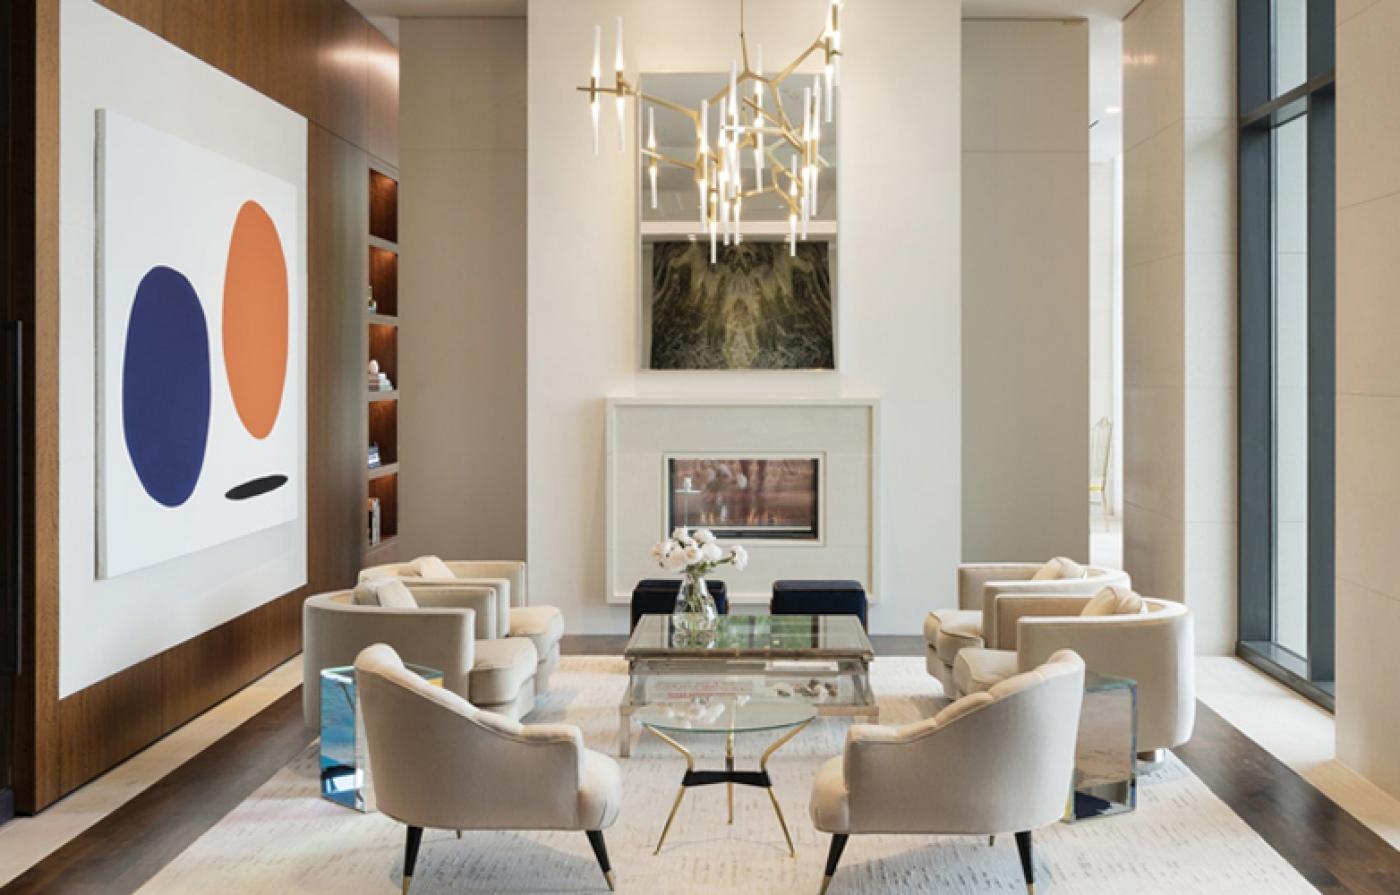 There's No Place Like Home: Renowned Hospitality Designer Lauren Rottet Finds New Joy in Residential Interiors